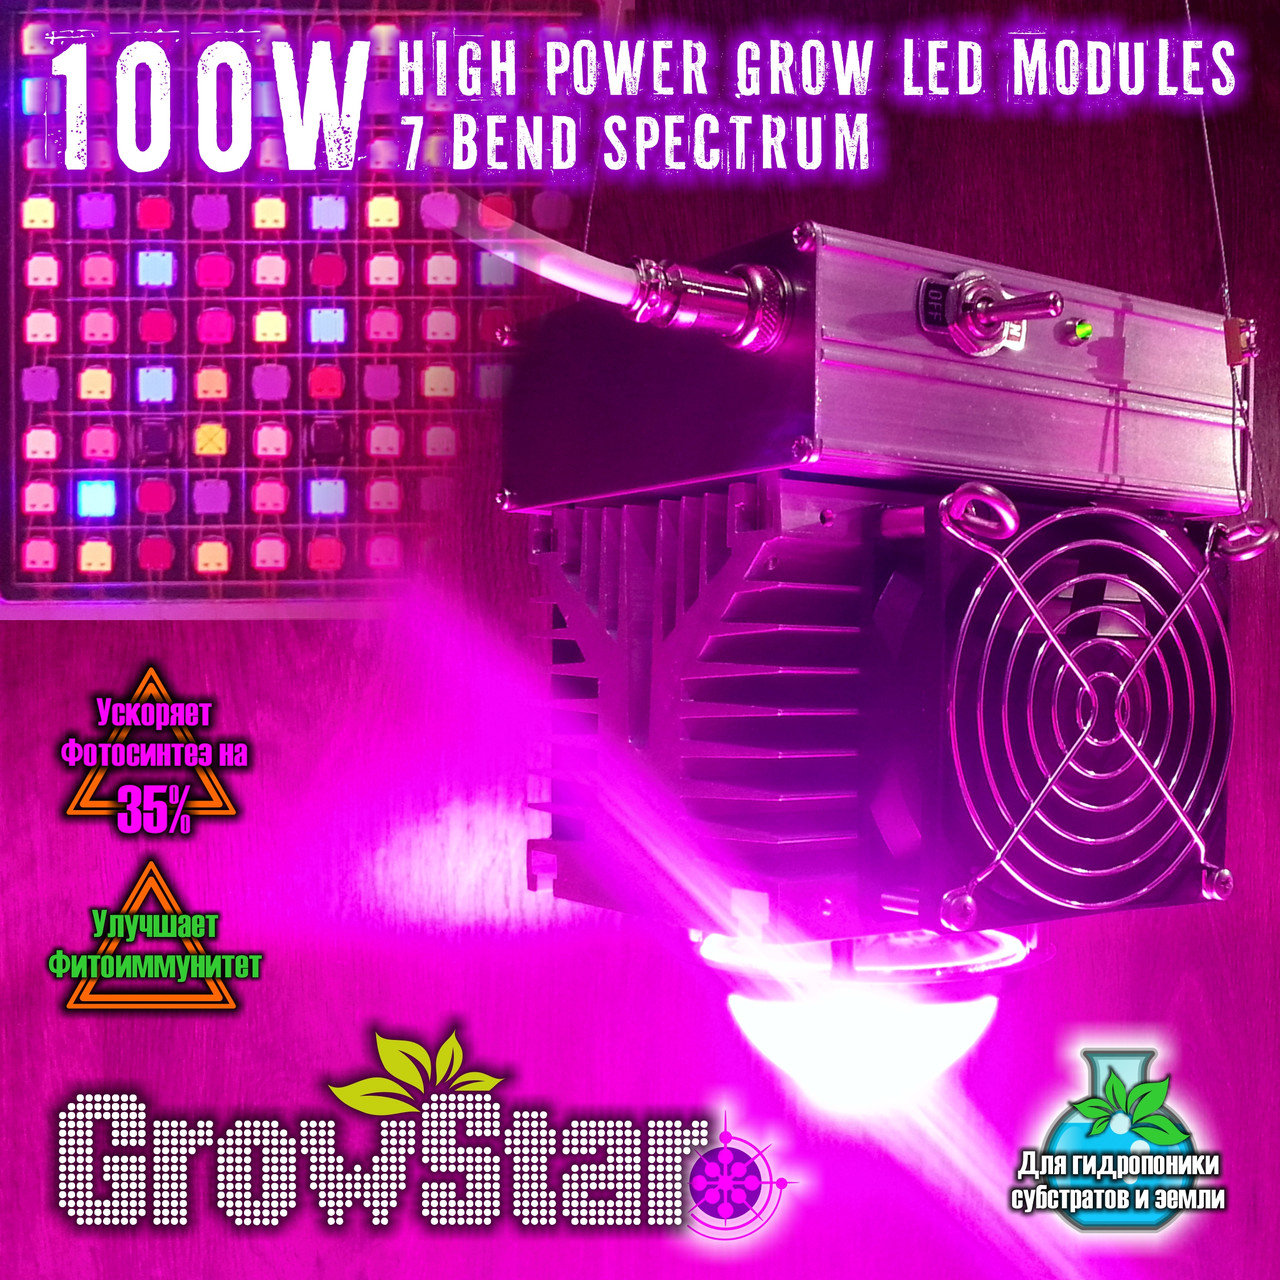 Фитолампа GrowStar 100W. Grow LED Lamp 100W 7 Band Spectrum.